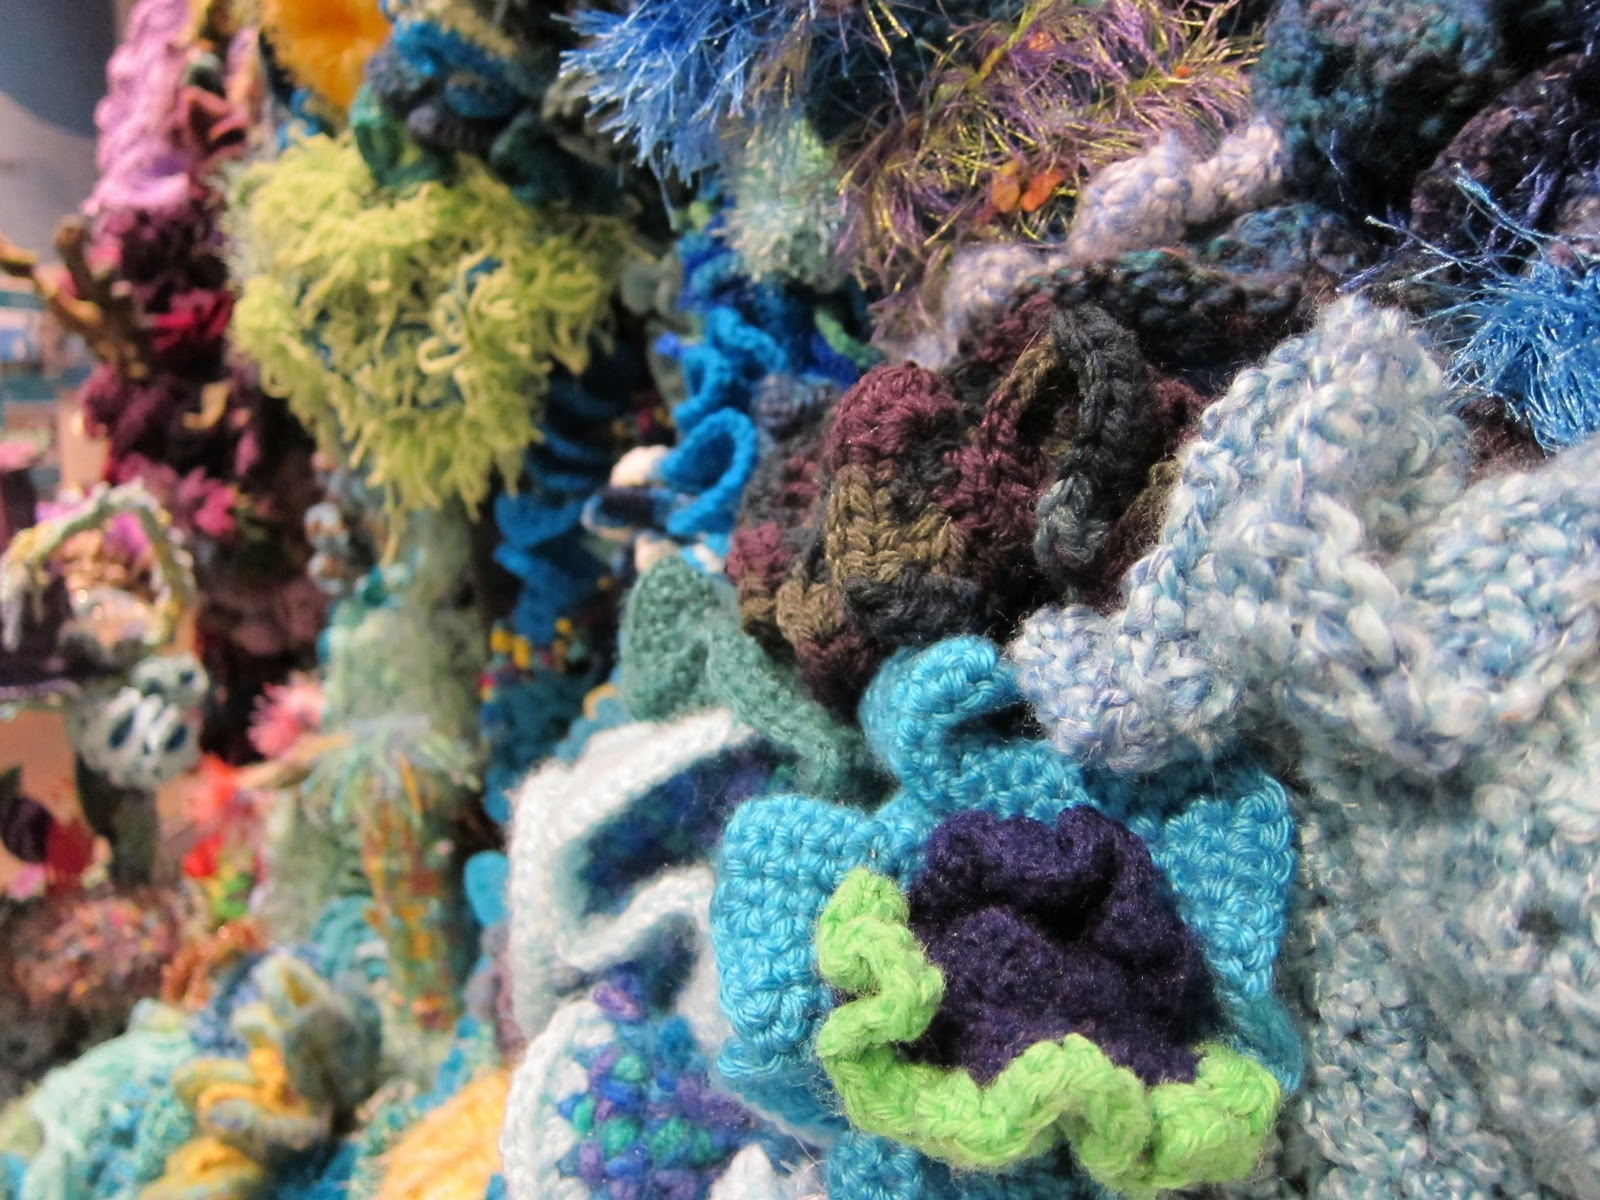 Crochet Coral Reef : Hyperbolic Crochet Coral Reef Exhibit at the Smithsonian The Zen of ...